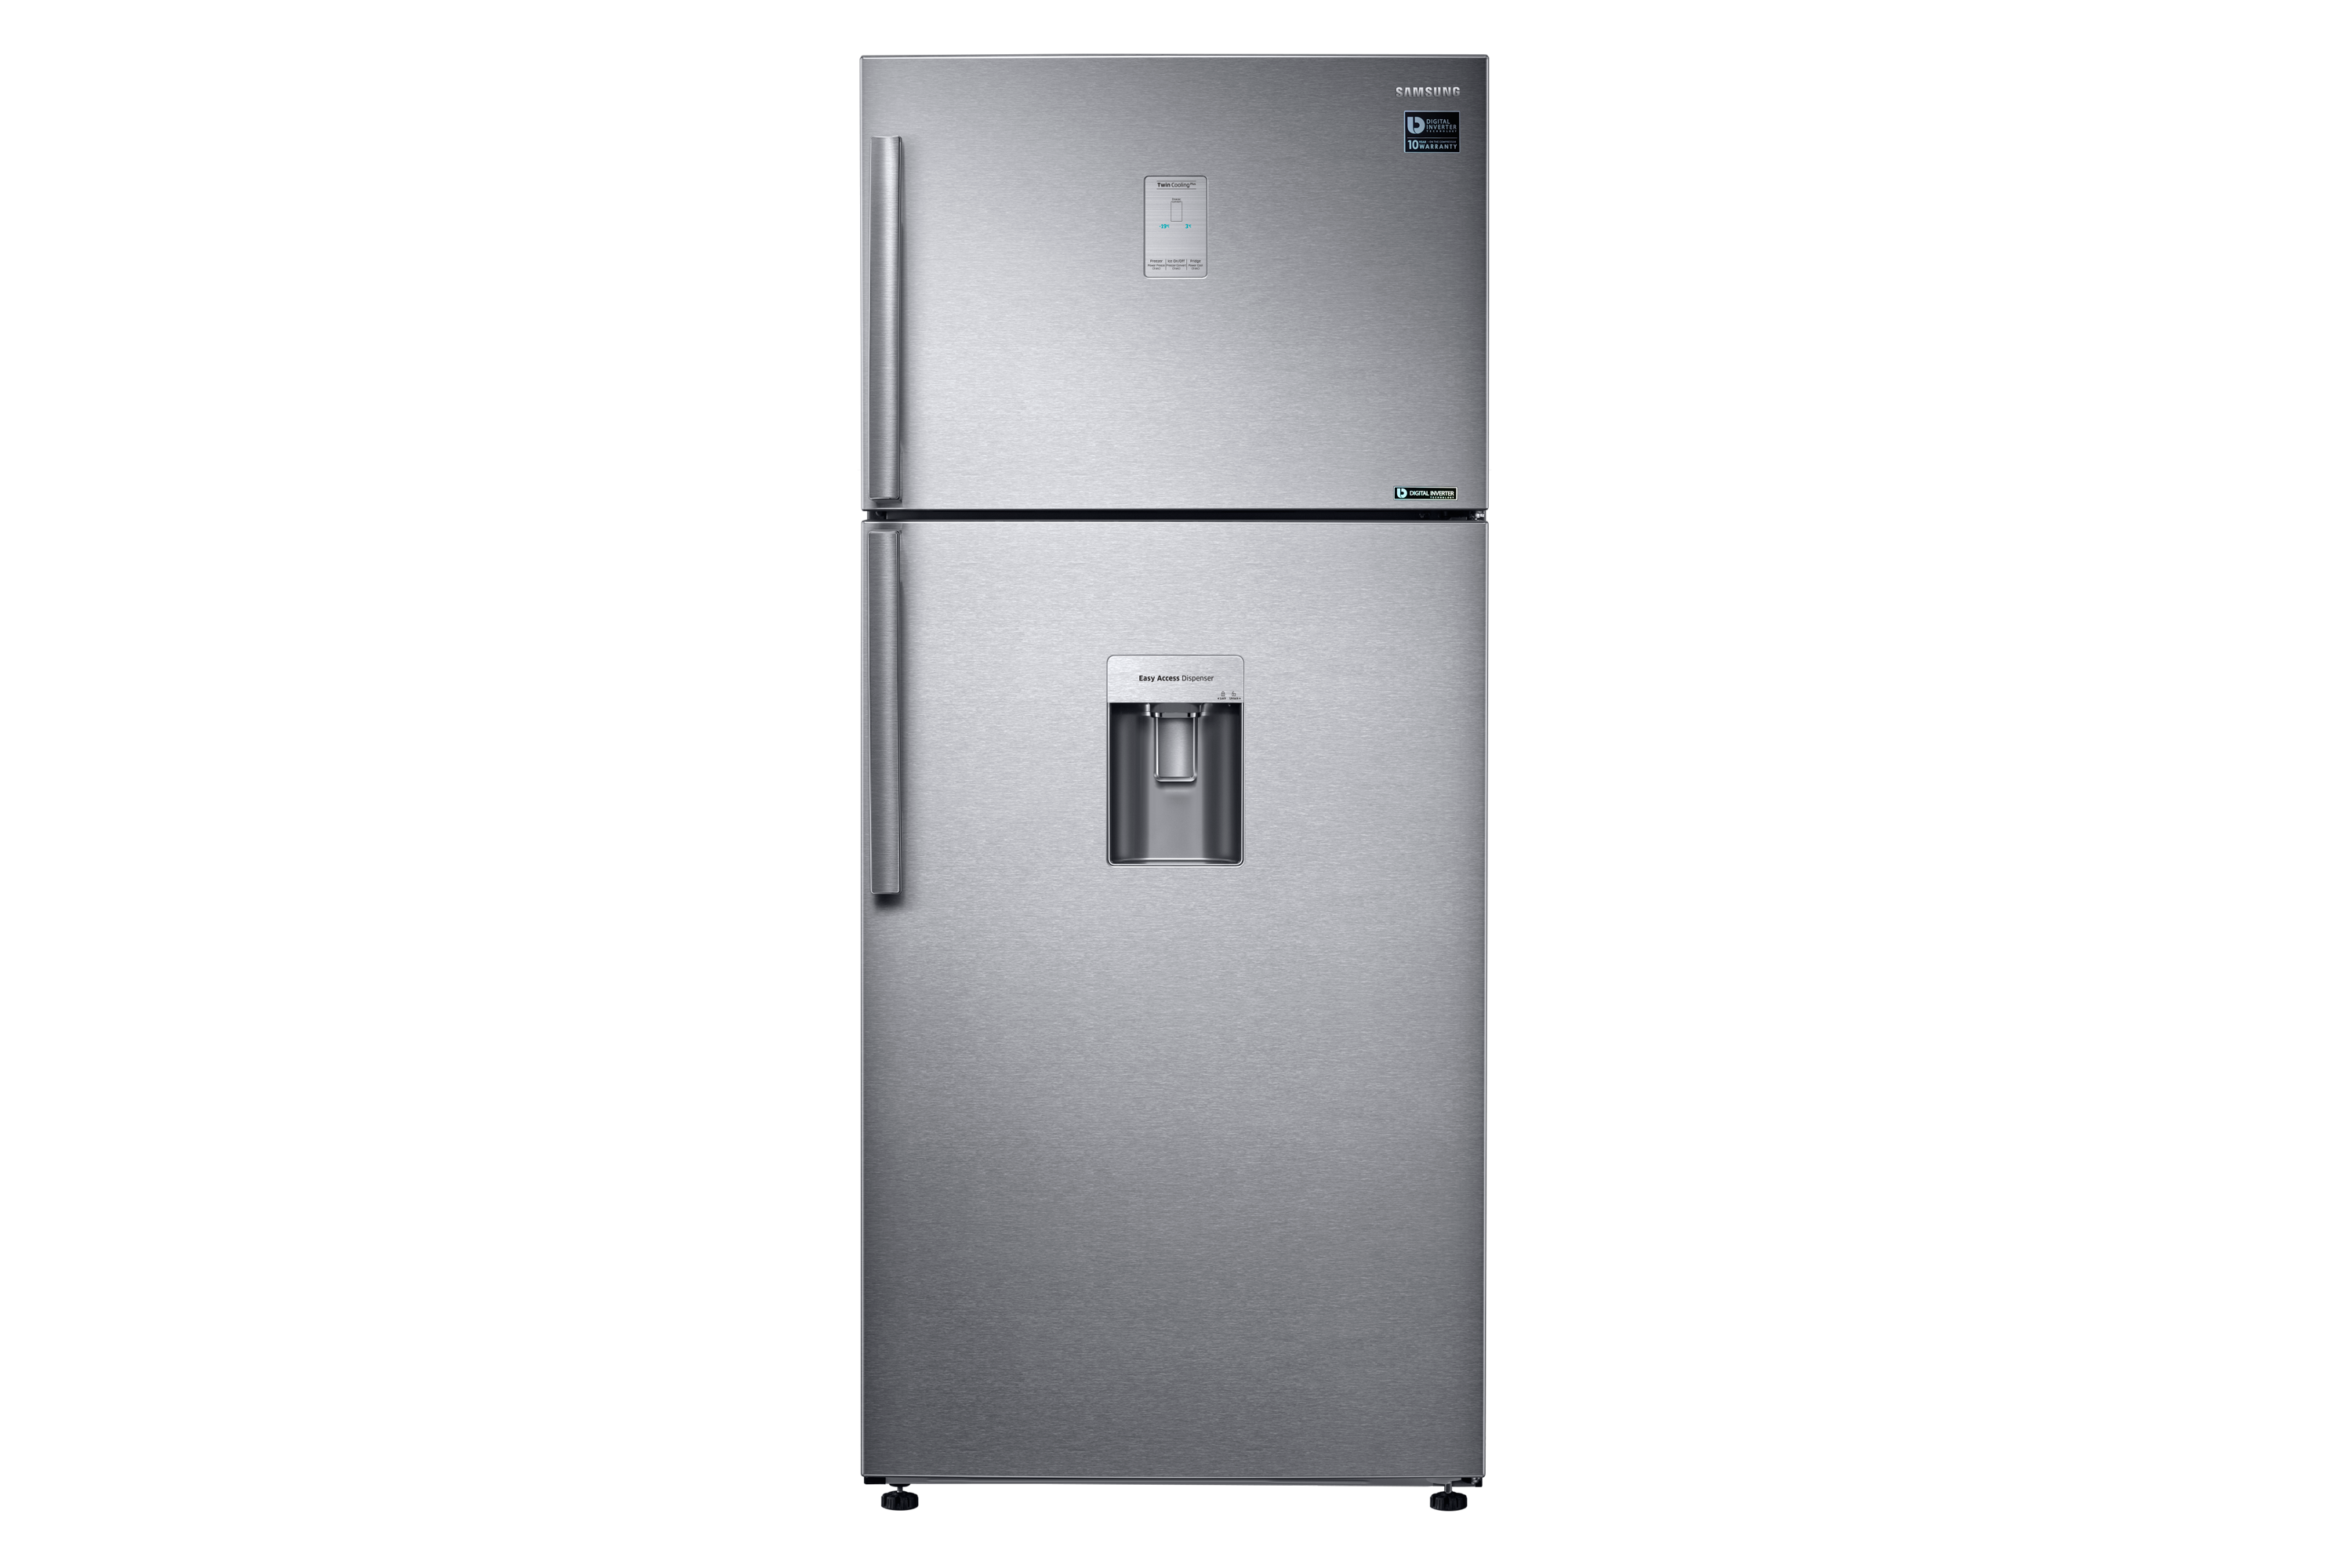 RT53K6550SL Top mount freezer with Twin Cooling, 526L